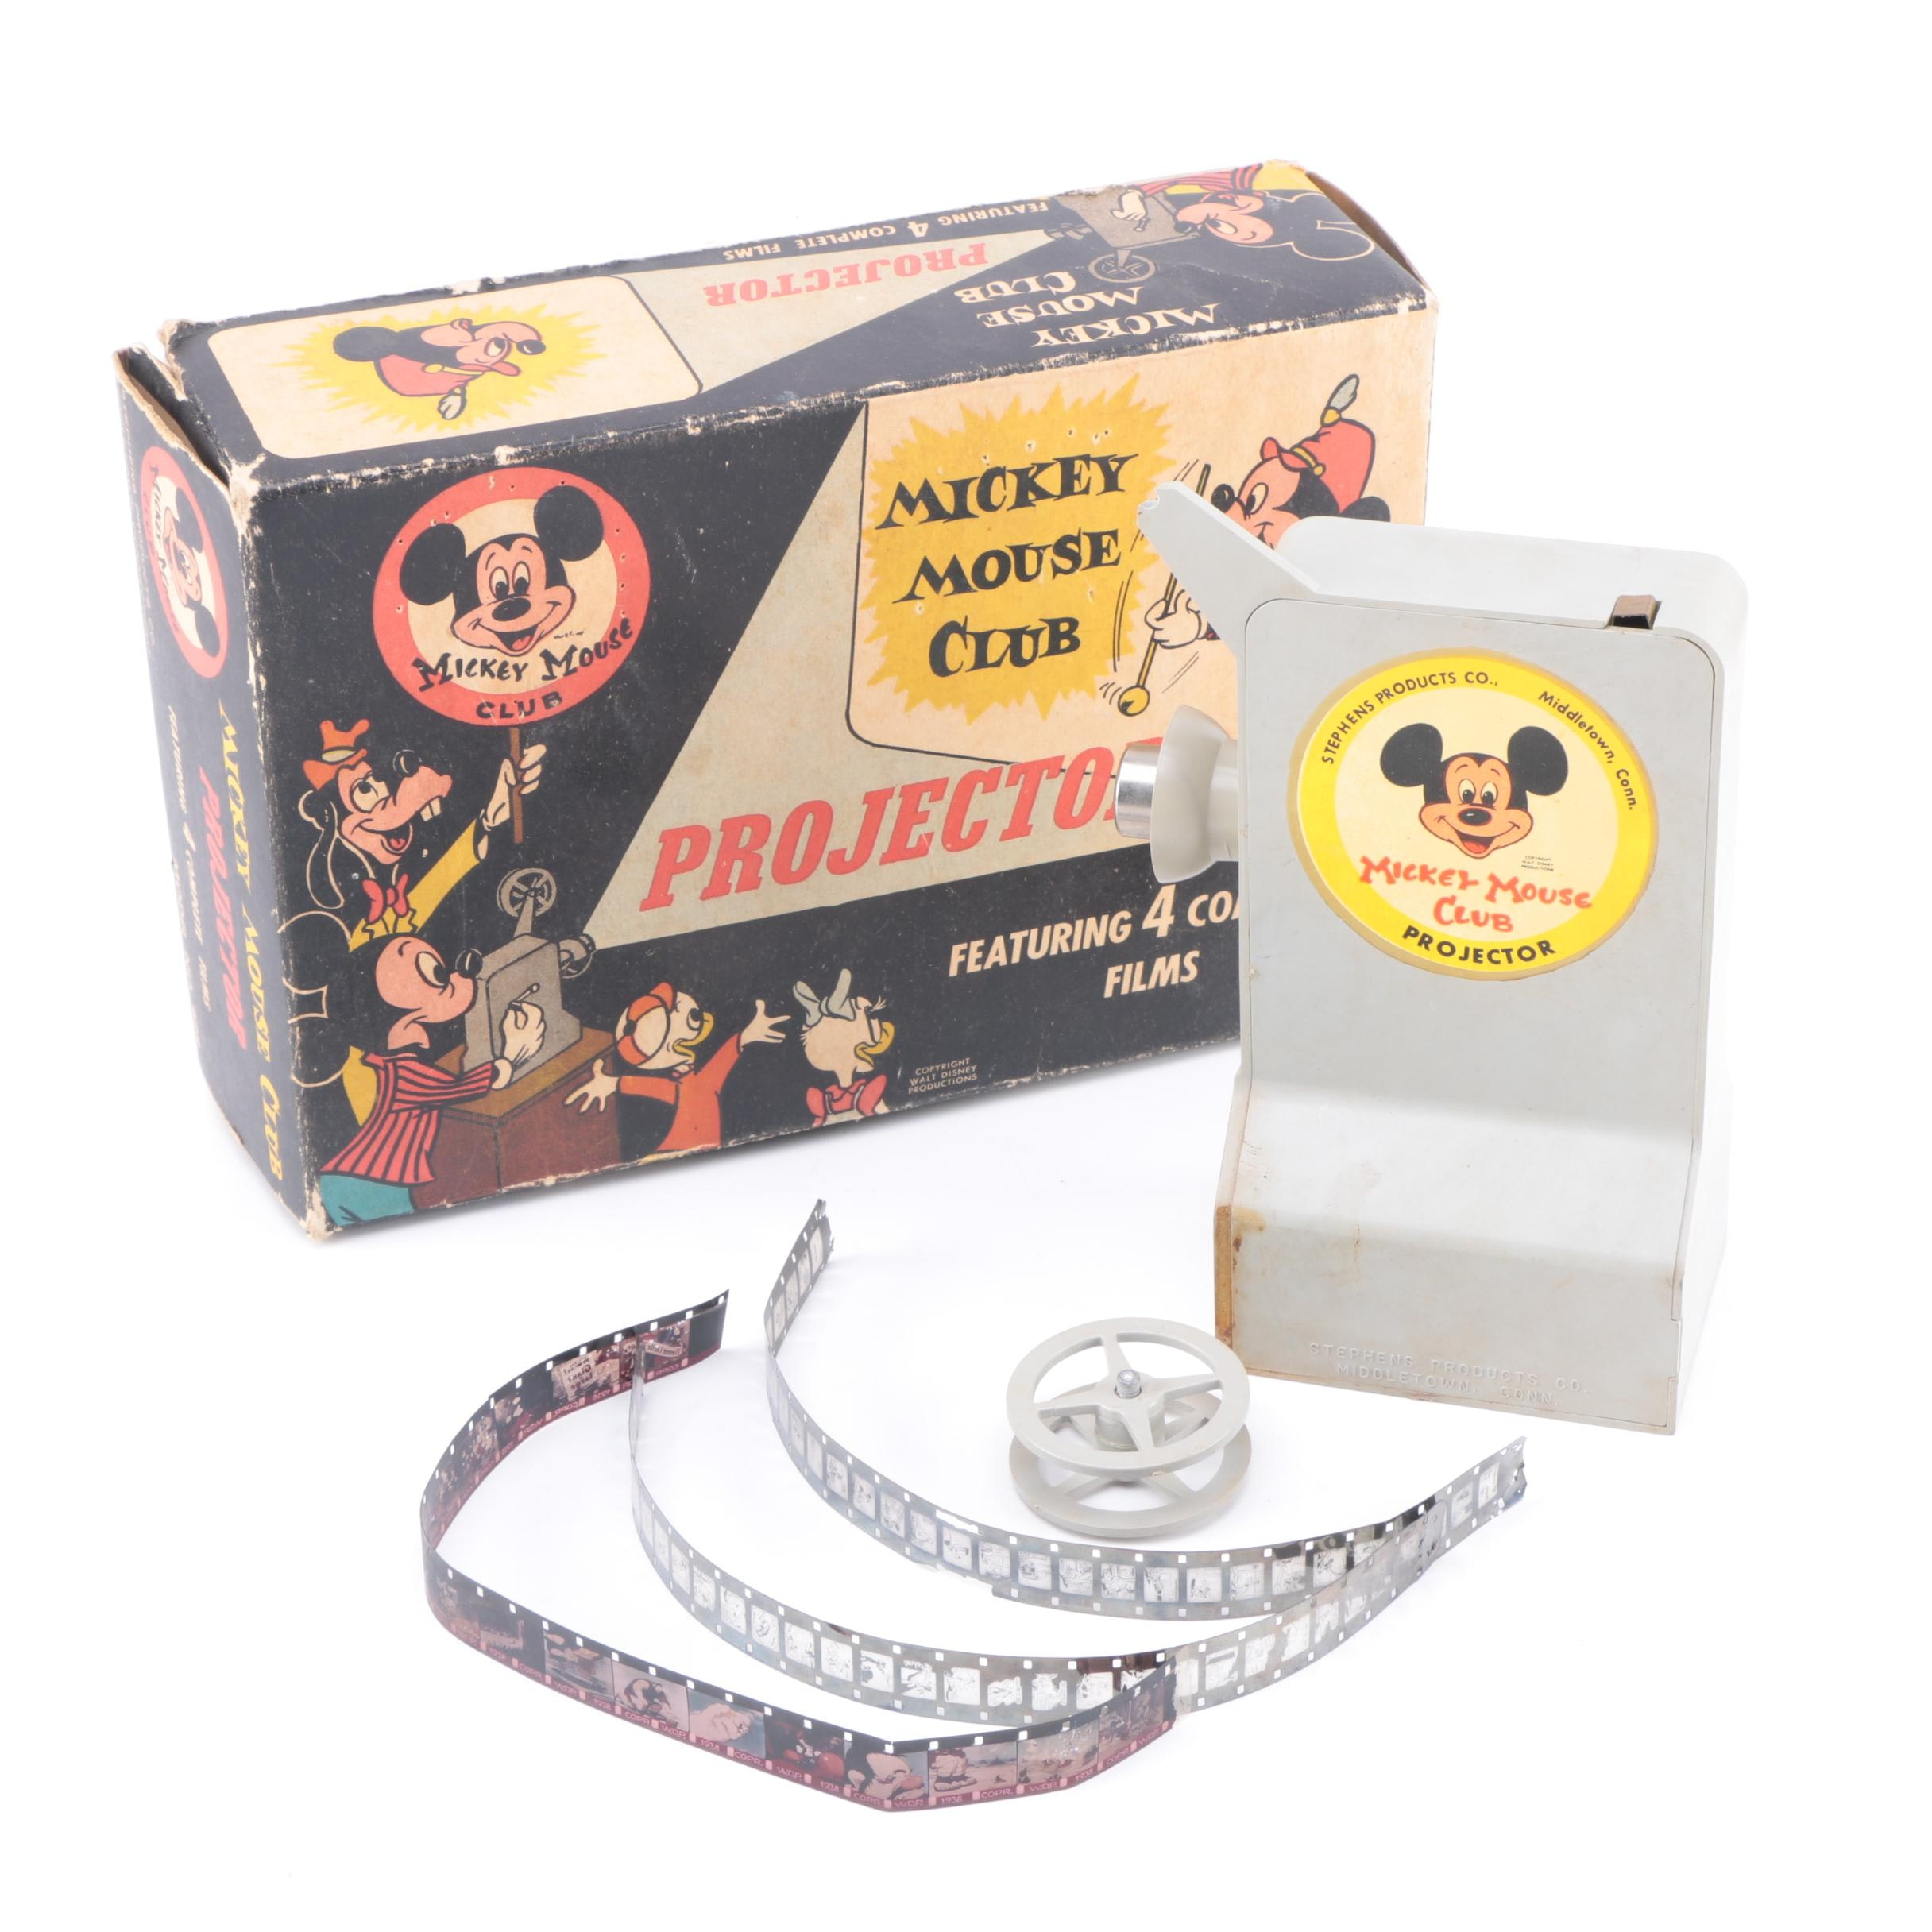 Vintage Mickey Mouse Club Projector